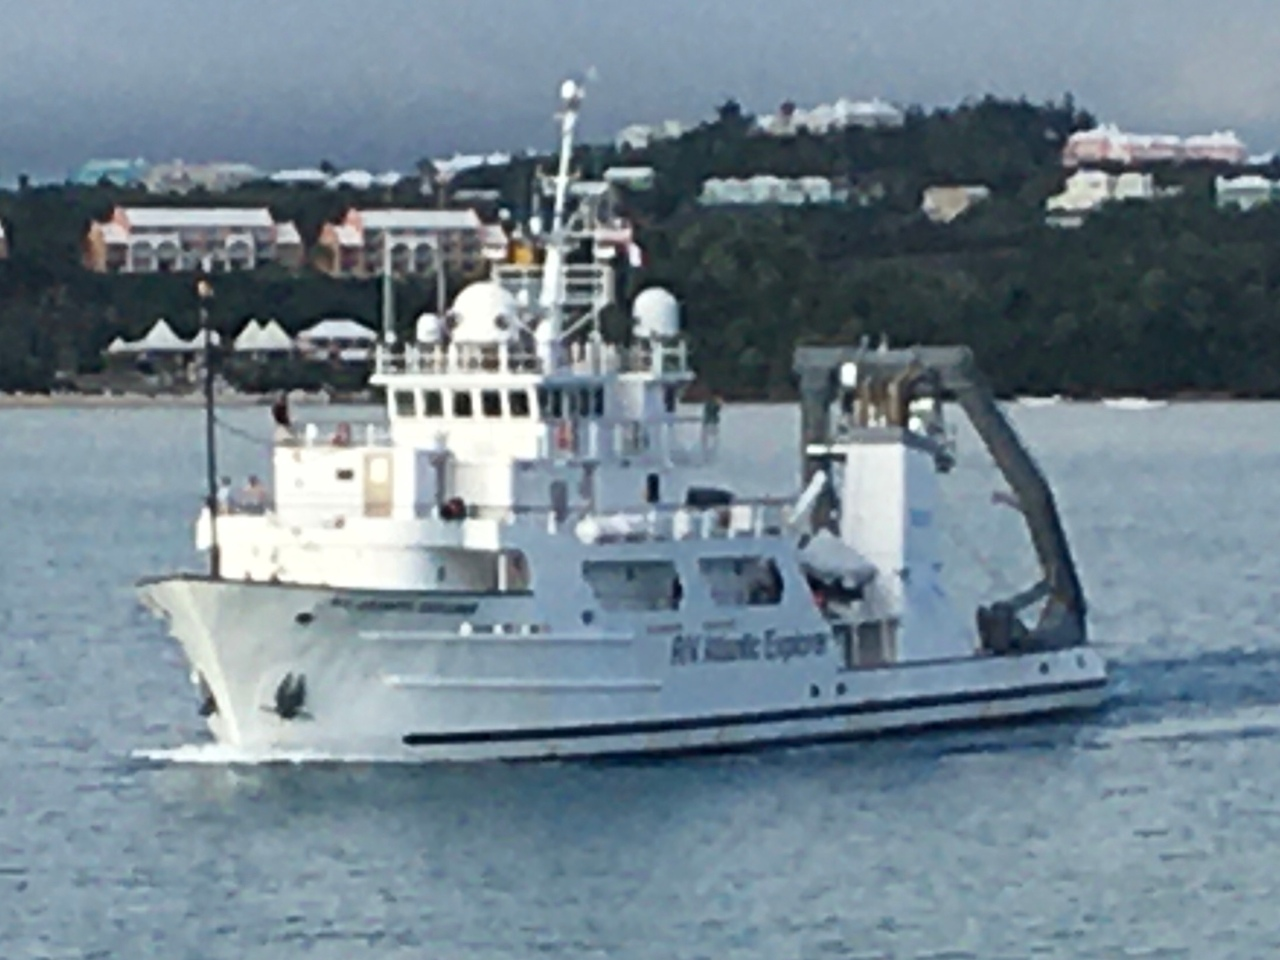 Atlantic Explorer